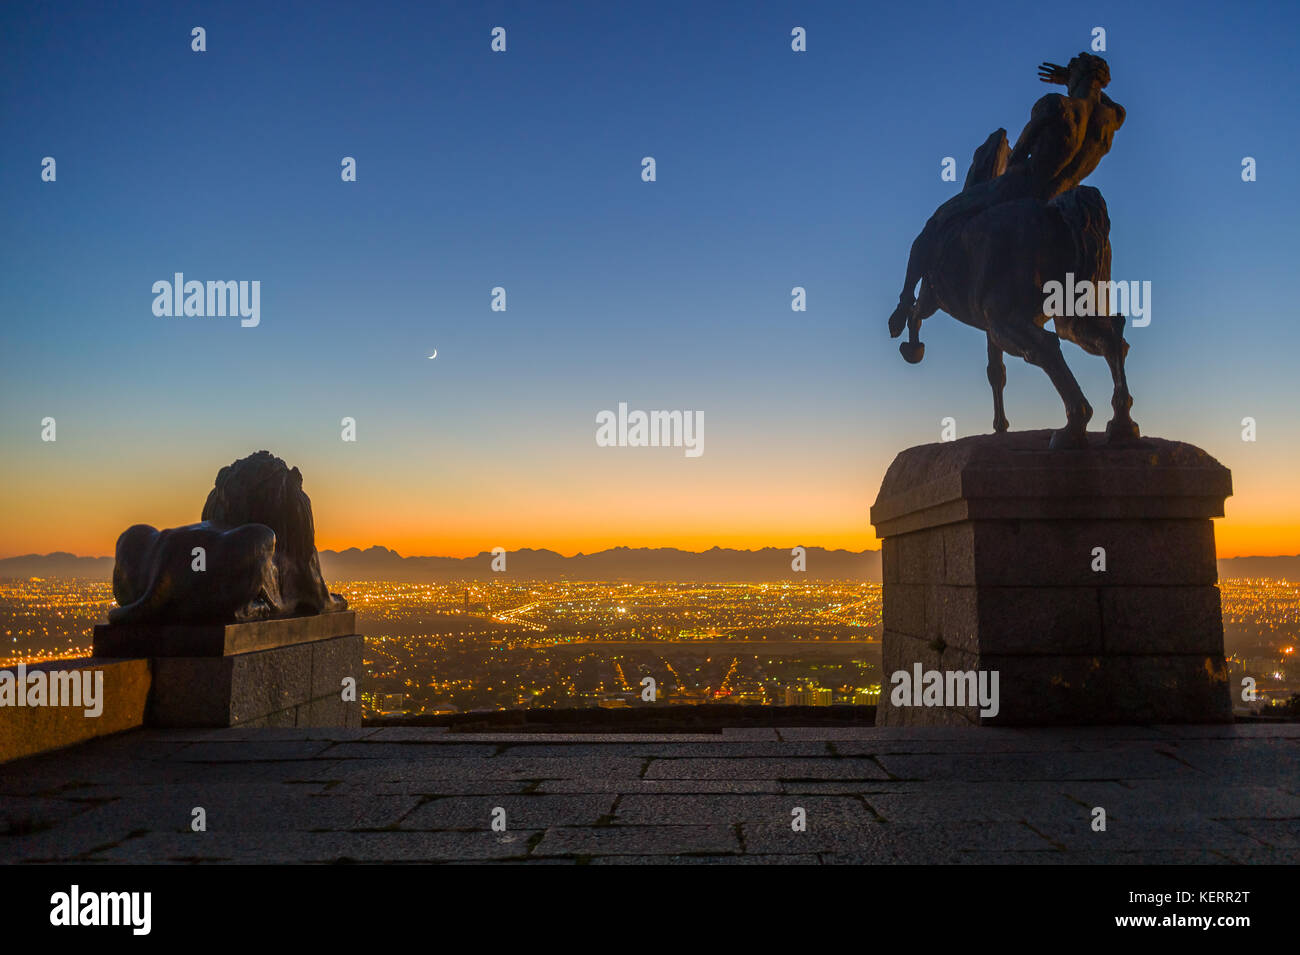 Rhodes Memorial overlooks the city lights and distant mountain ranges of the City of Cape Town, Western Cape, South - Stock Image